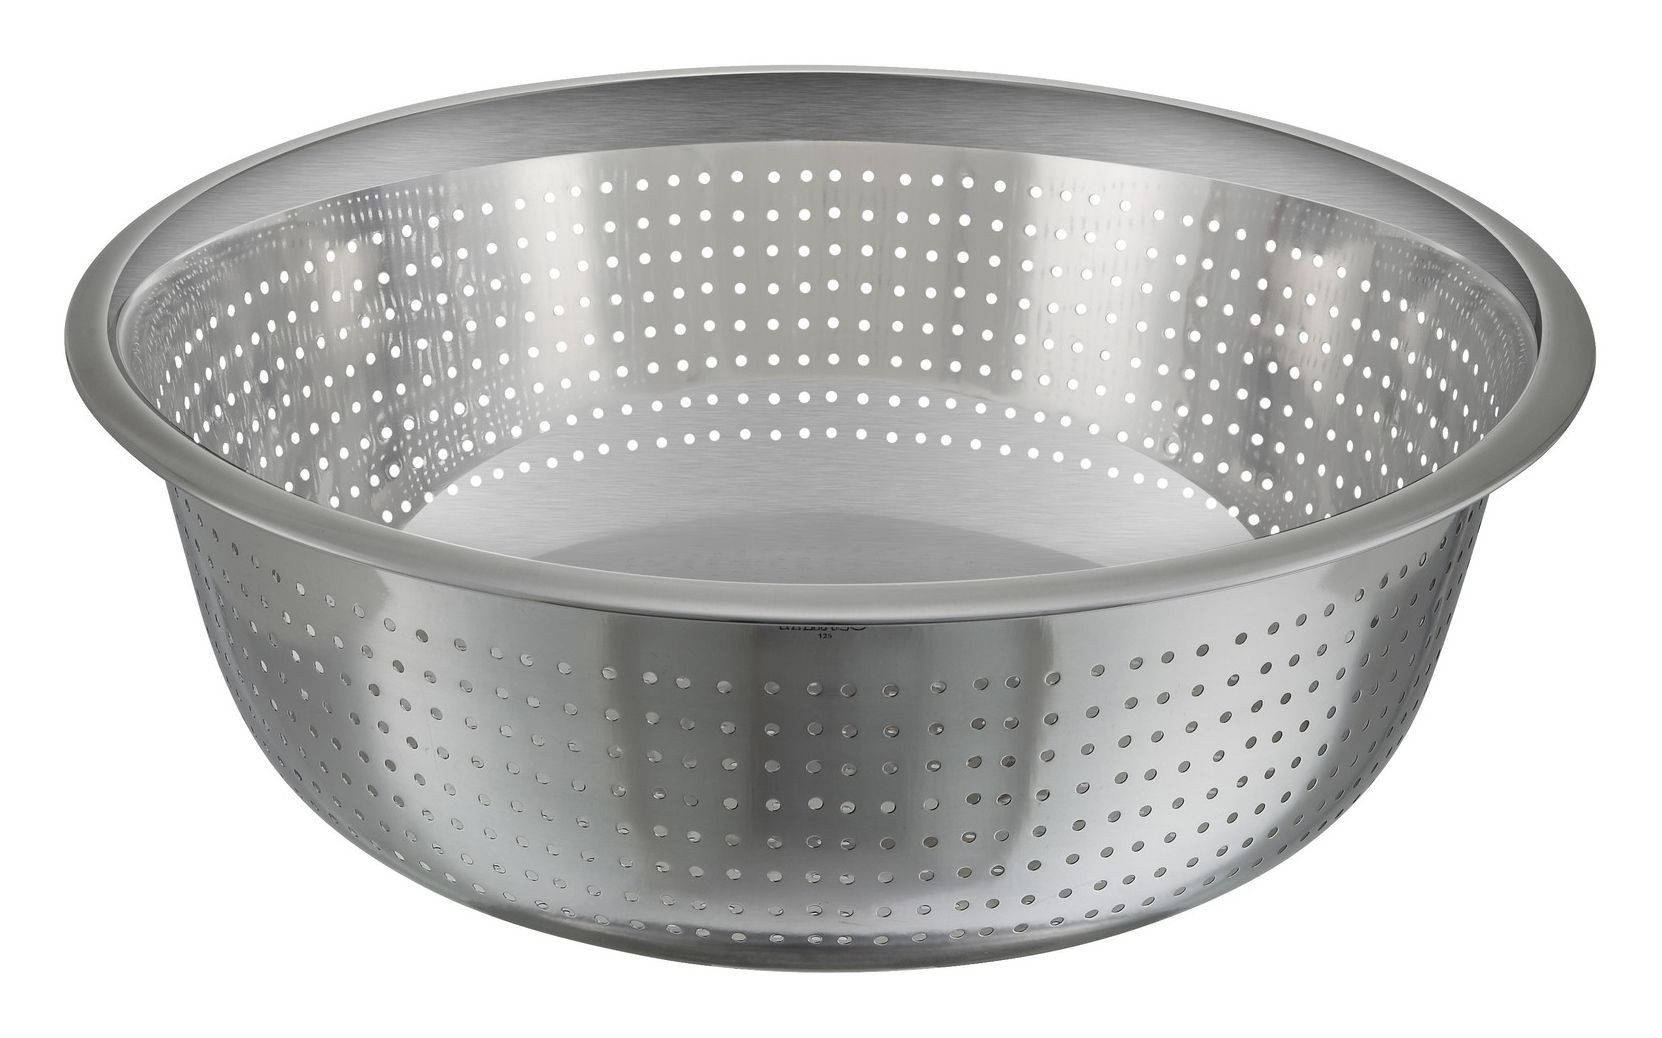 Stainless Steel Chinese Colander (2.5 MM. Holes) - 13